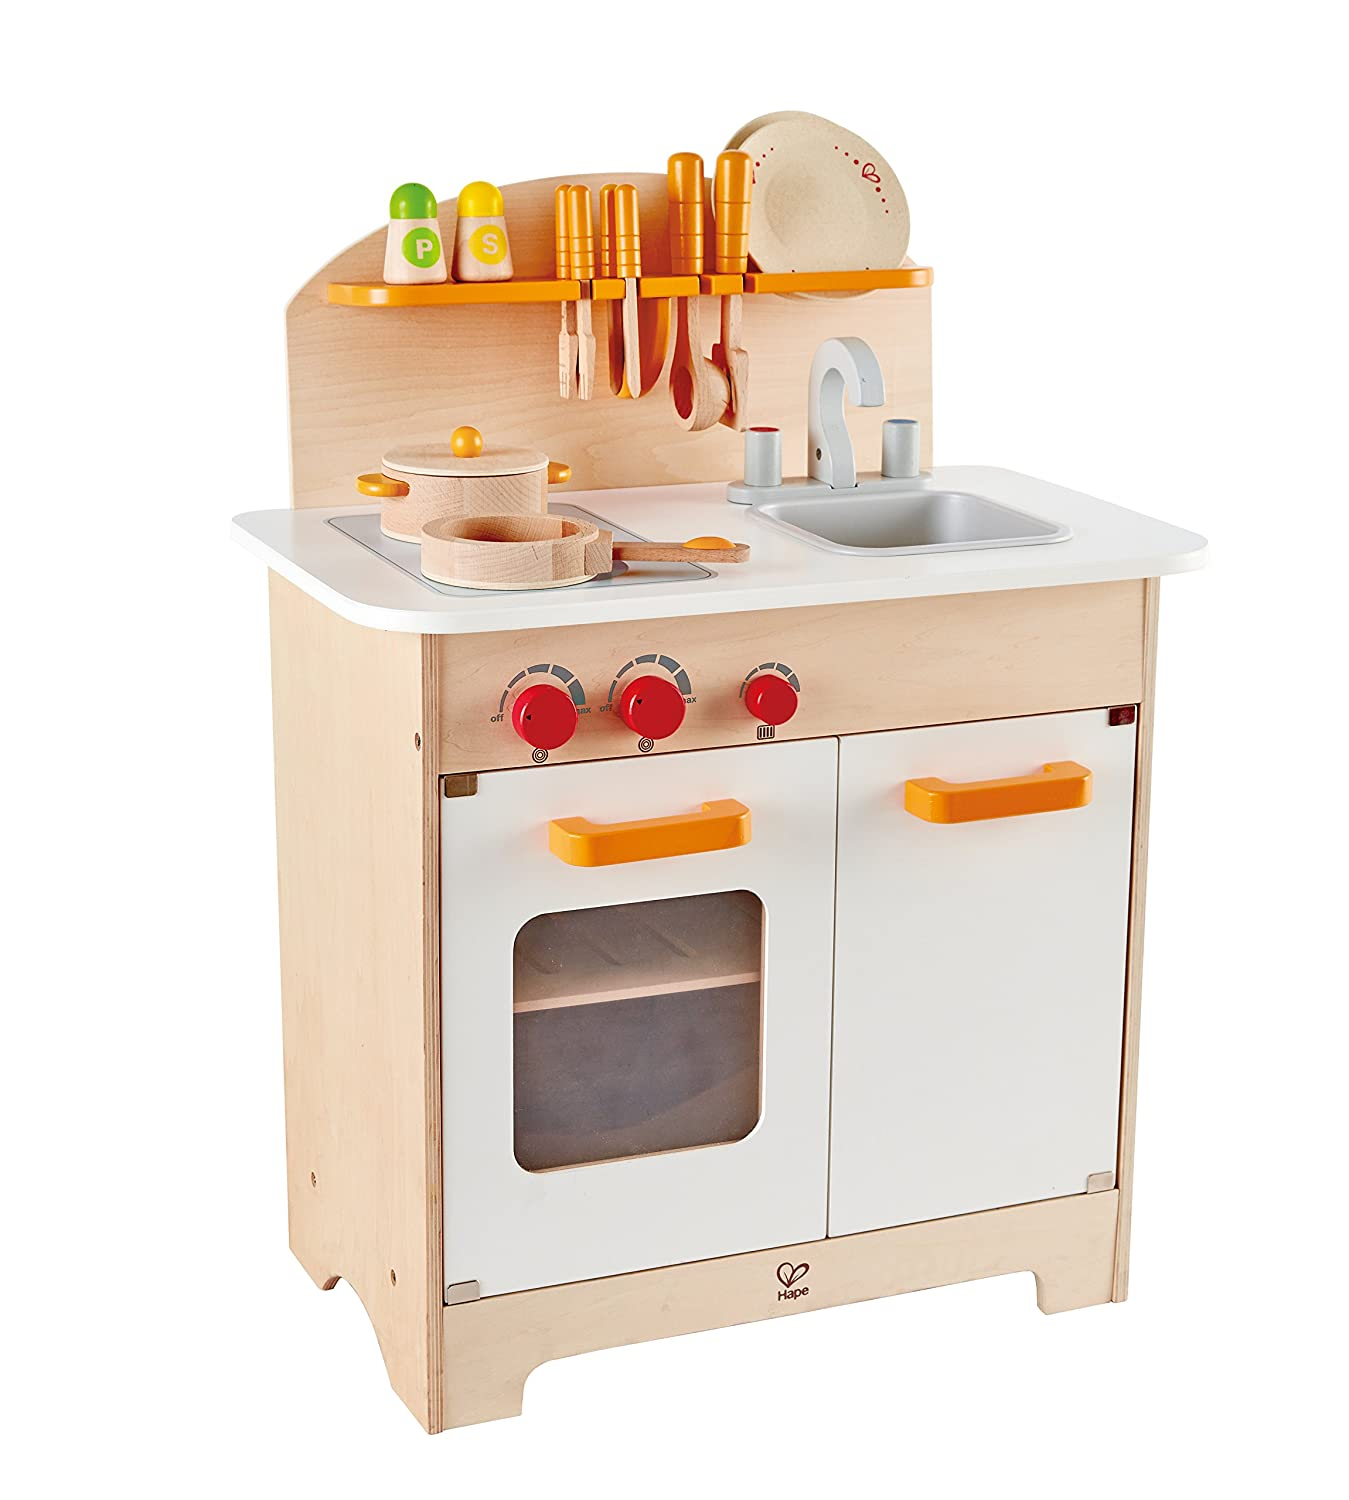 Hape E8116 Gourmet Chef Kitchen And Cookware Wooden Play